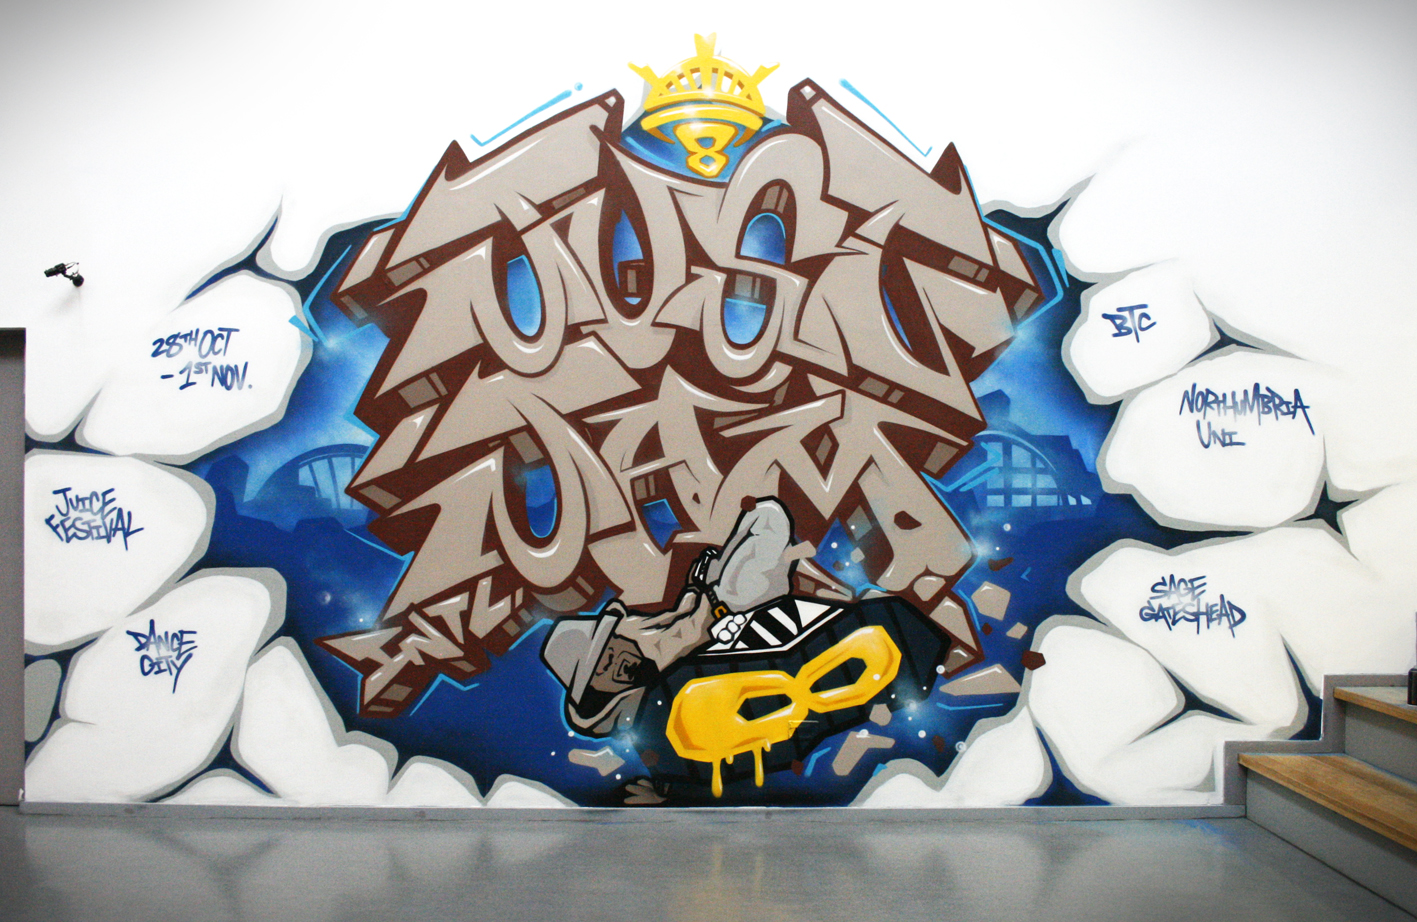 JUST JAM 8 DCwall